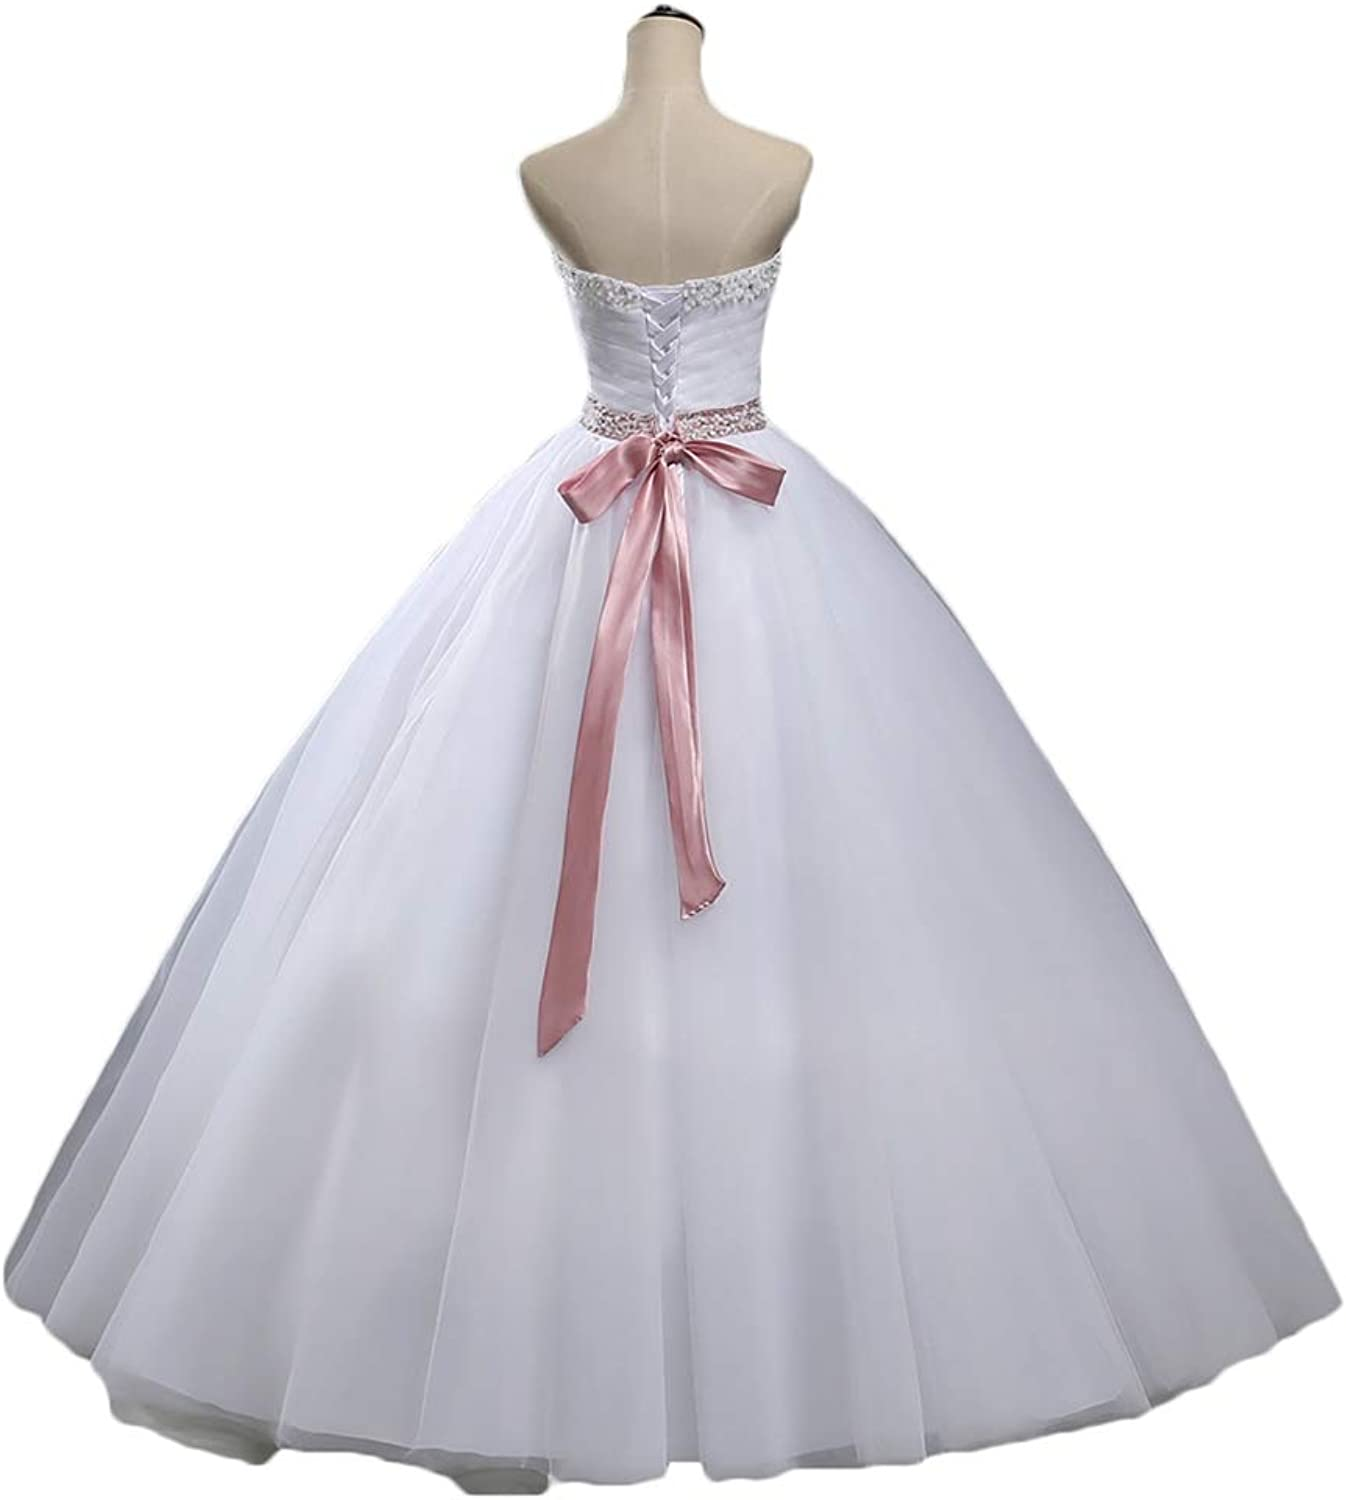 WAWALI Wedding Dress for Bride Organza Bridal Prom Ball Gowns with Pink Belt